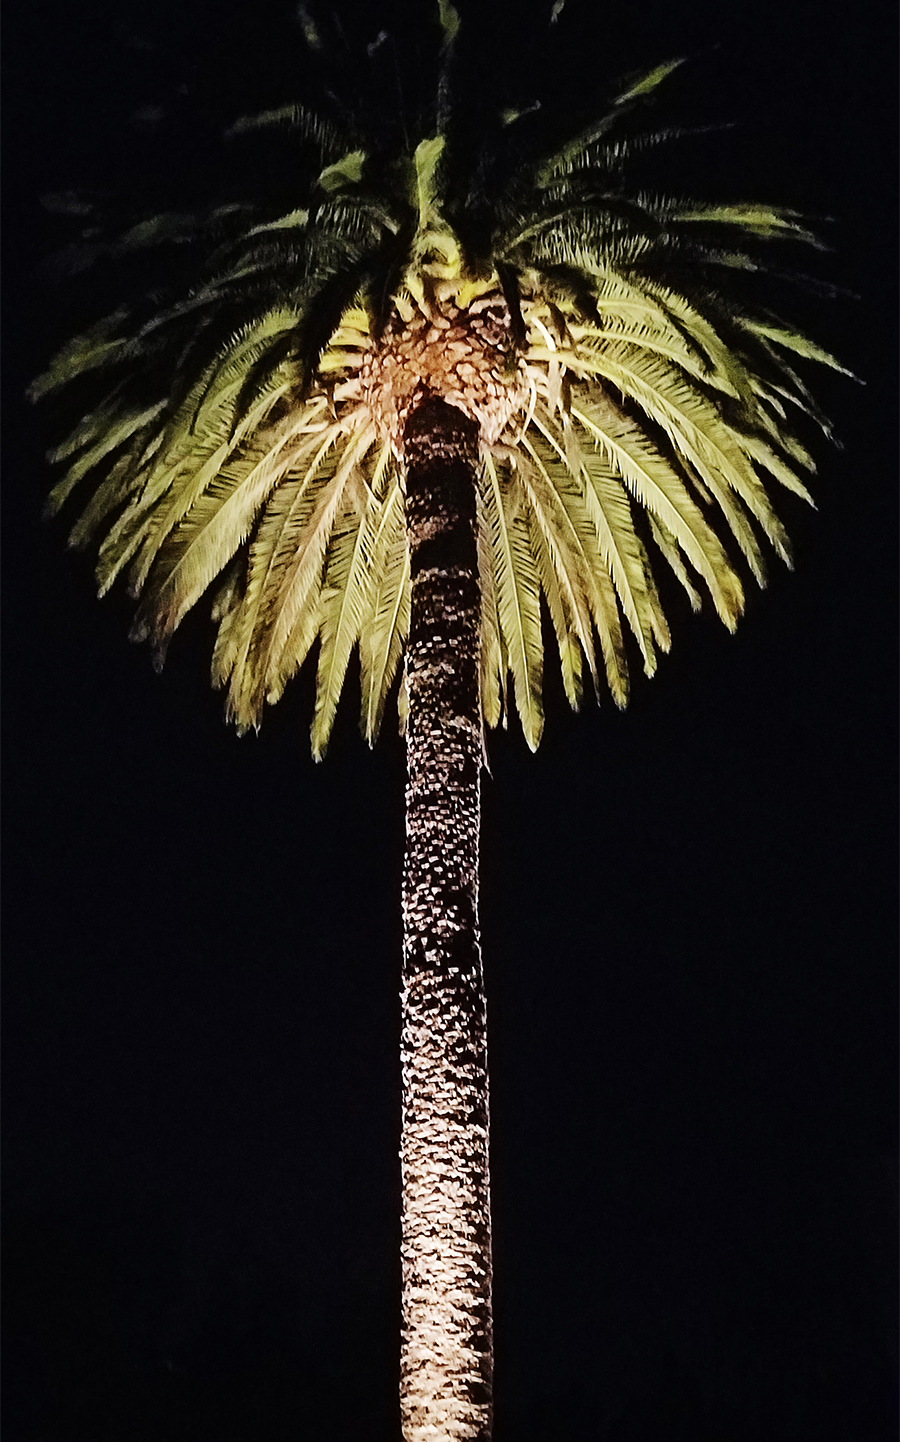 A date palm tree at night illuminated by low voltage lighting